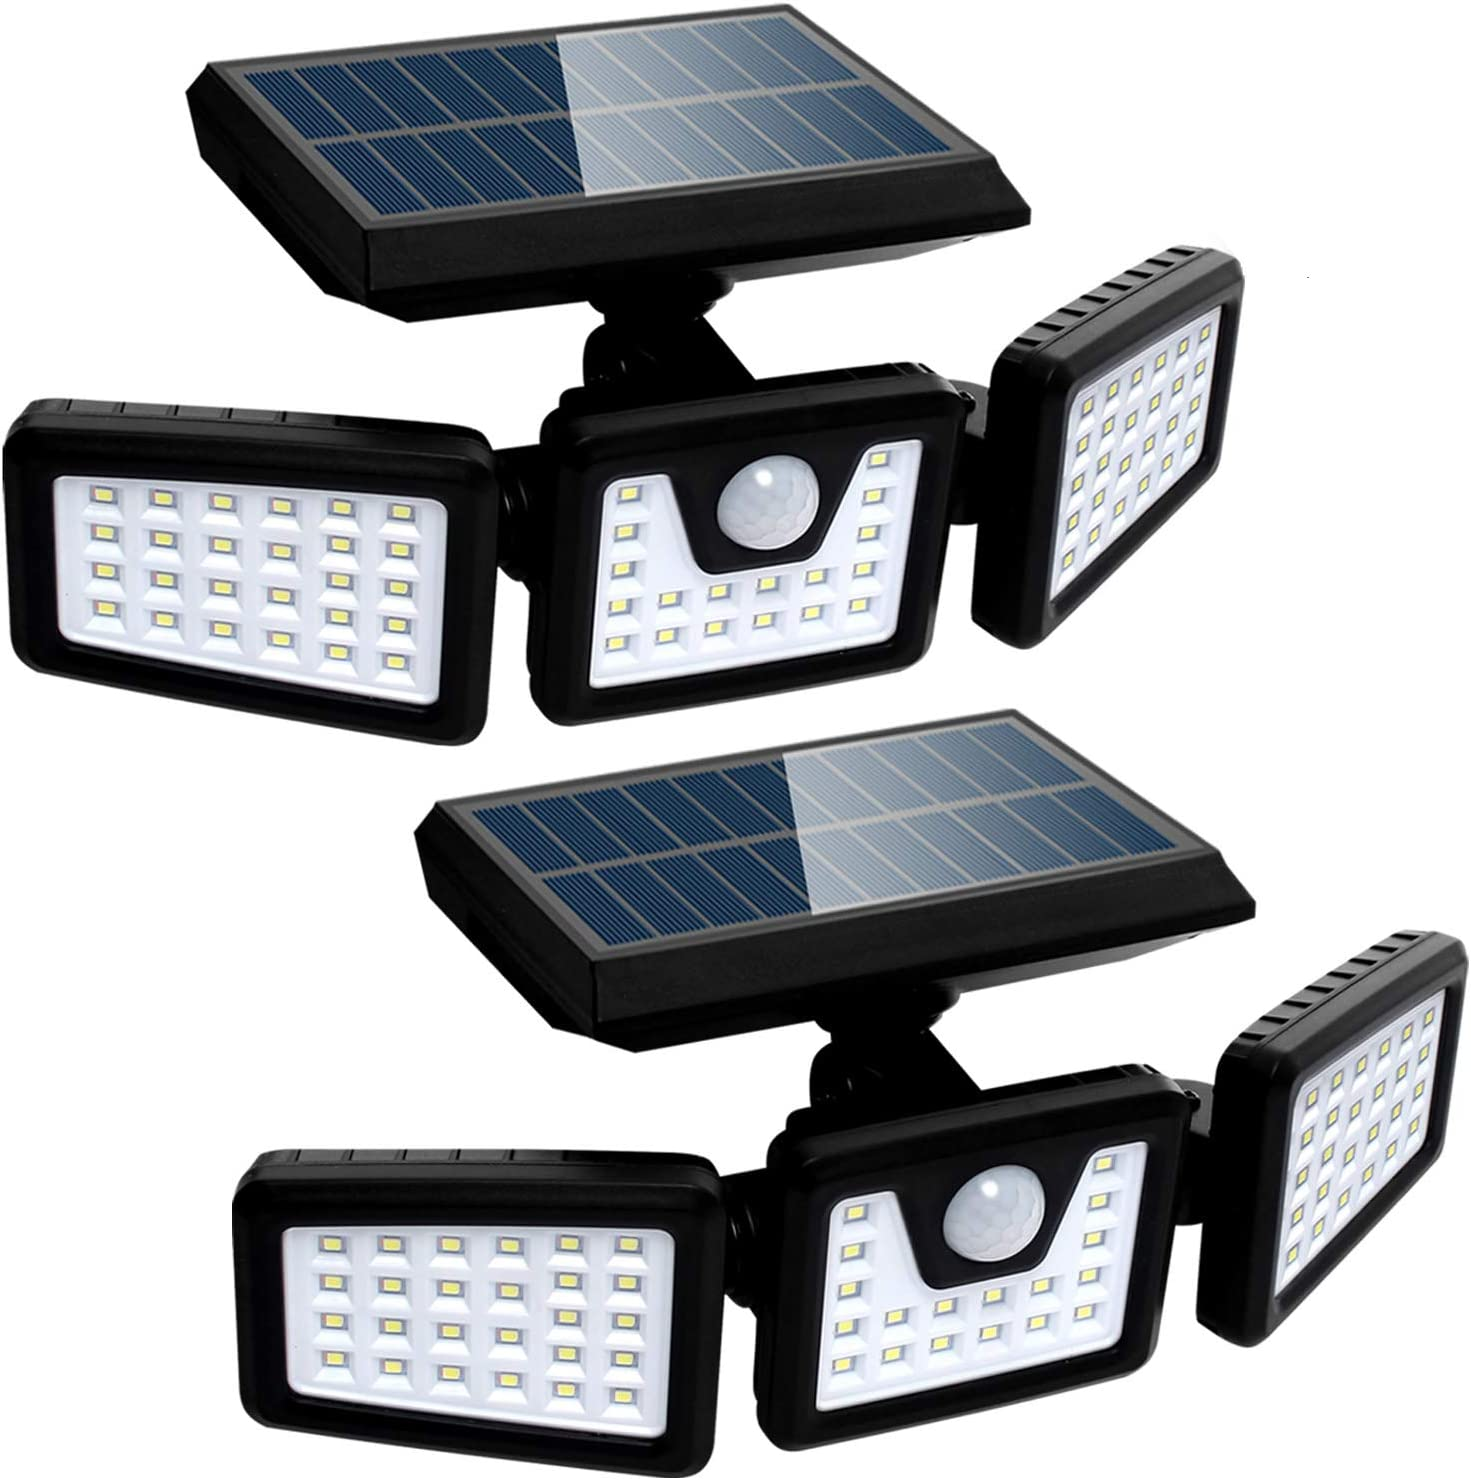 Solar Lights Outdoor with Motion Sensor, 3 Heads Security Lights Solar Powered, 70 LED Flood Light Motion Detected Spotlight for Garage Yard Entryways Patio, IP65 Waterproof 2 Pack - -